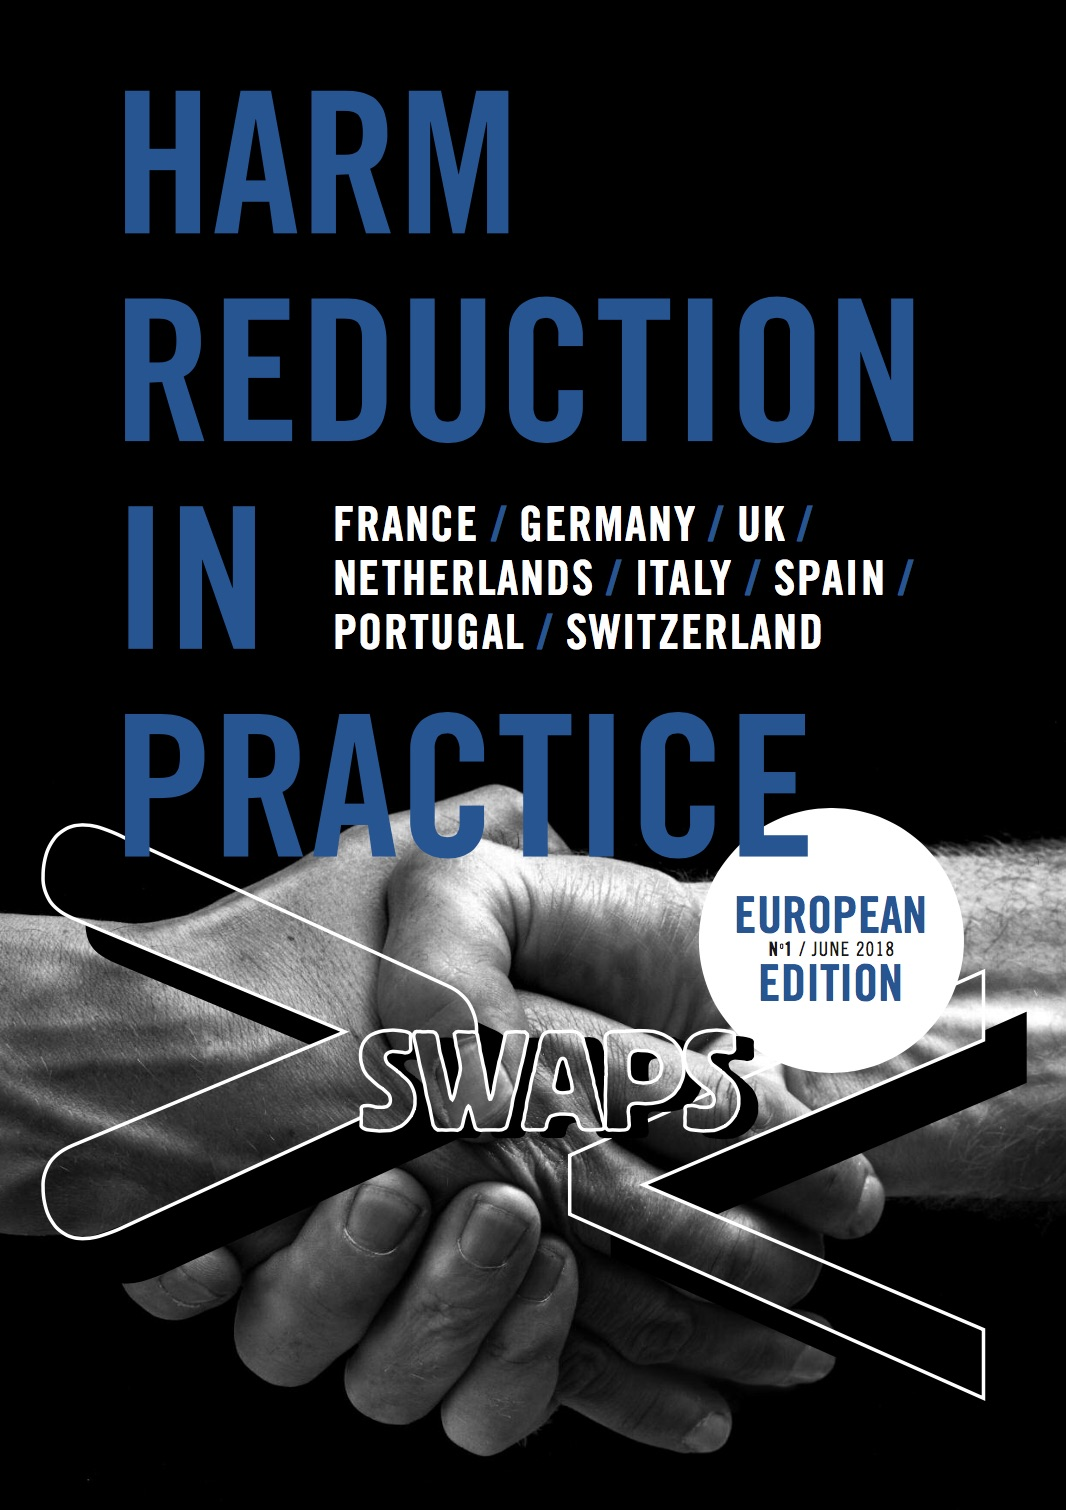 Swaps Europe 1 Harm Reduction In Practice